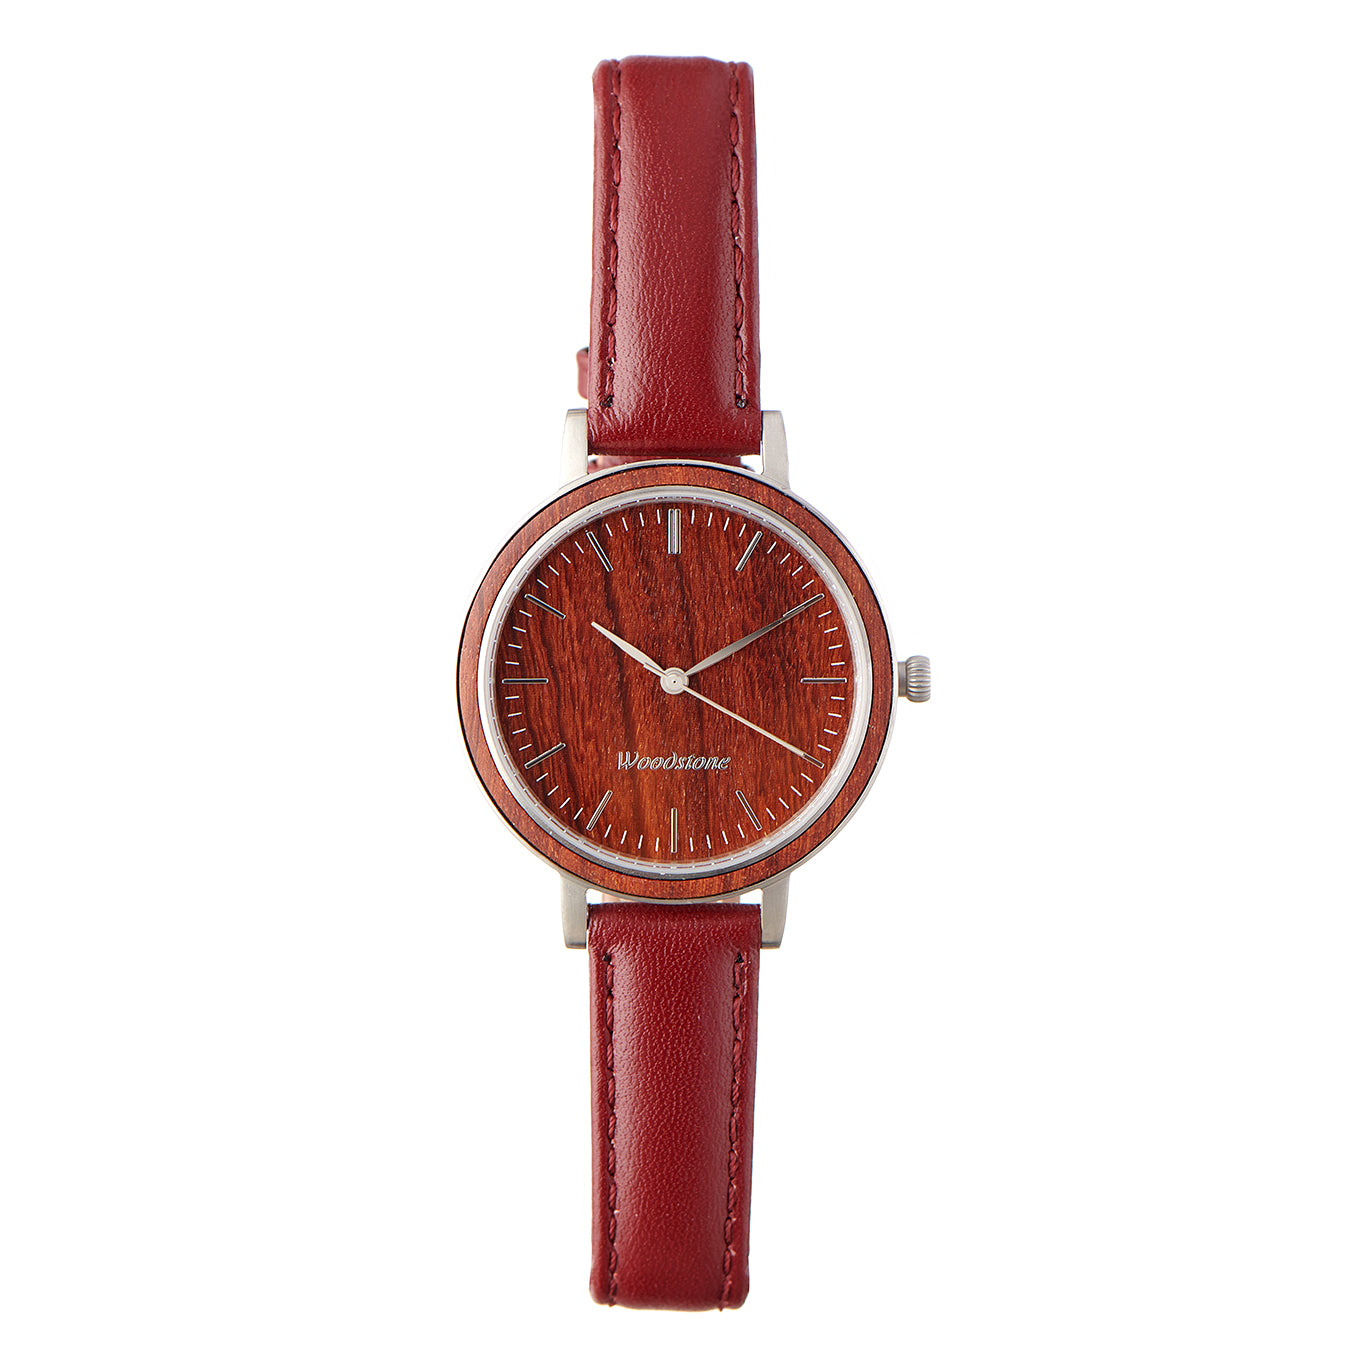 Woodstone Serenity Rosewood Women's Wooden Watches - Silver